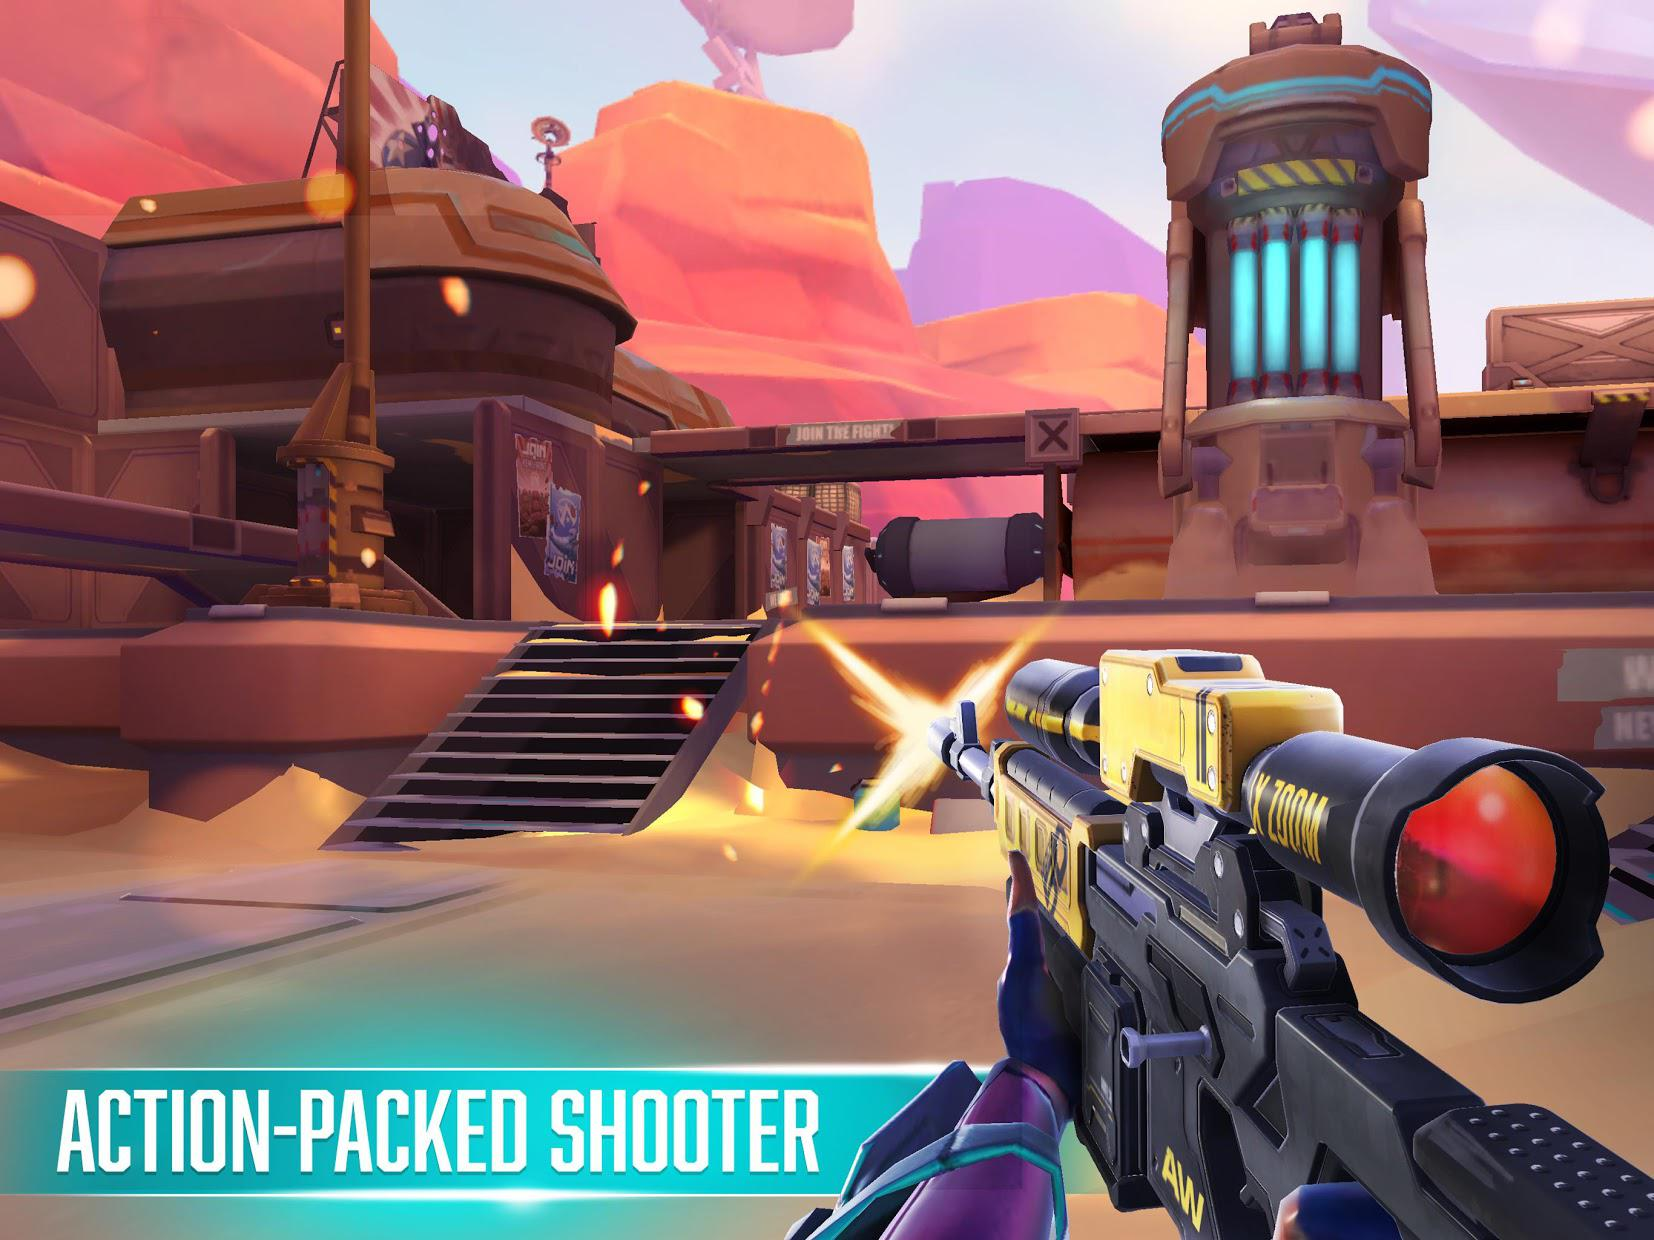 Rise: Shooter Arena 游戏截图1